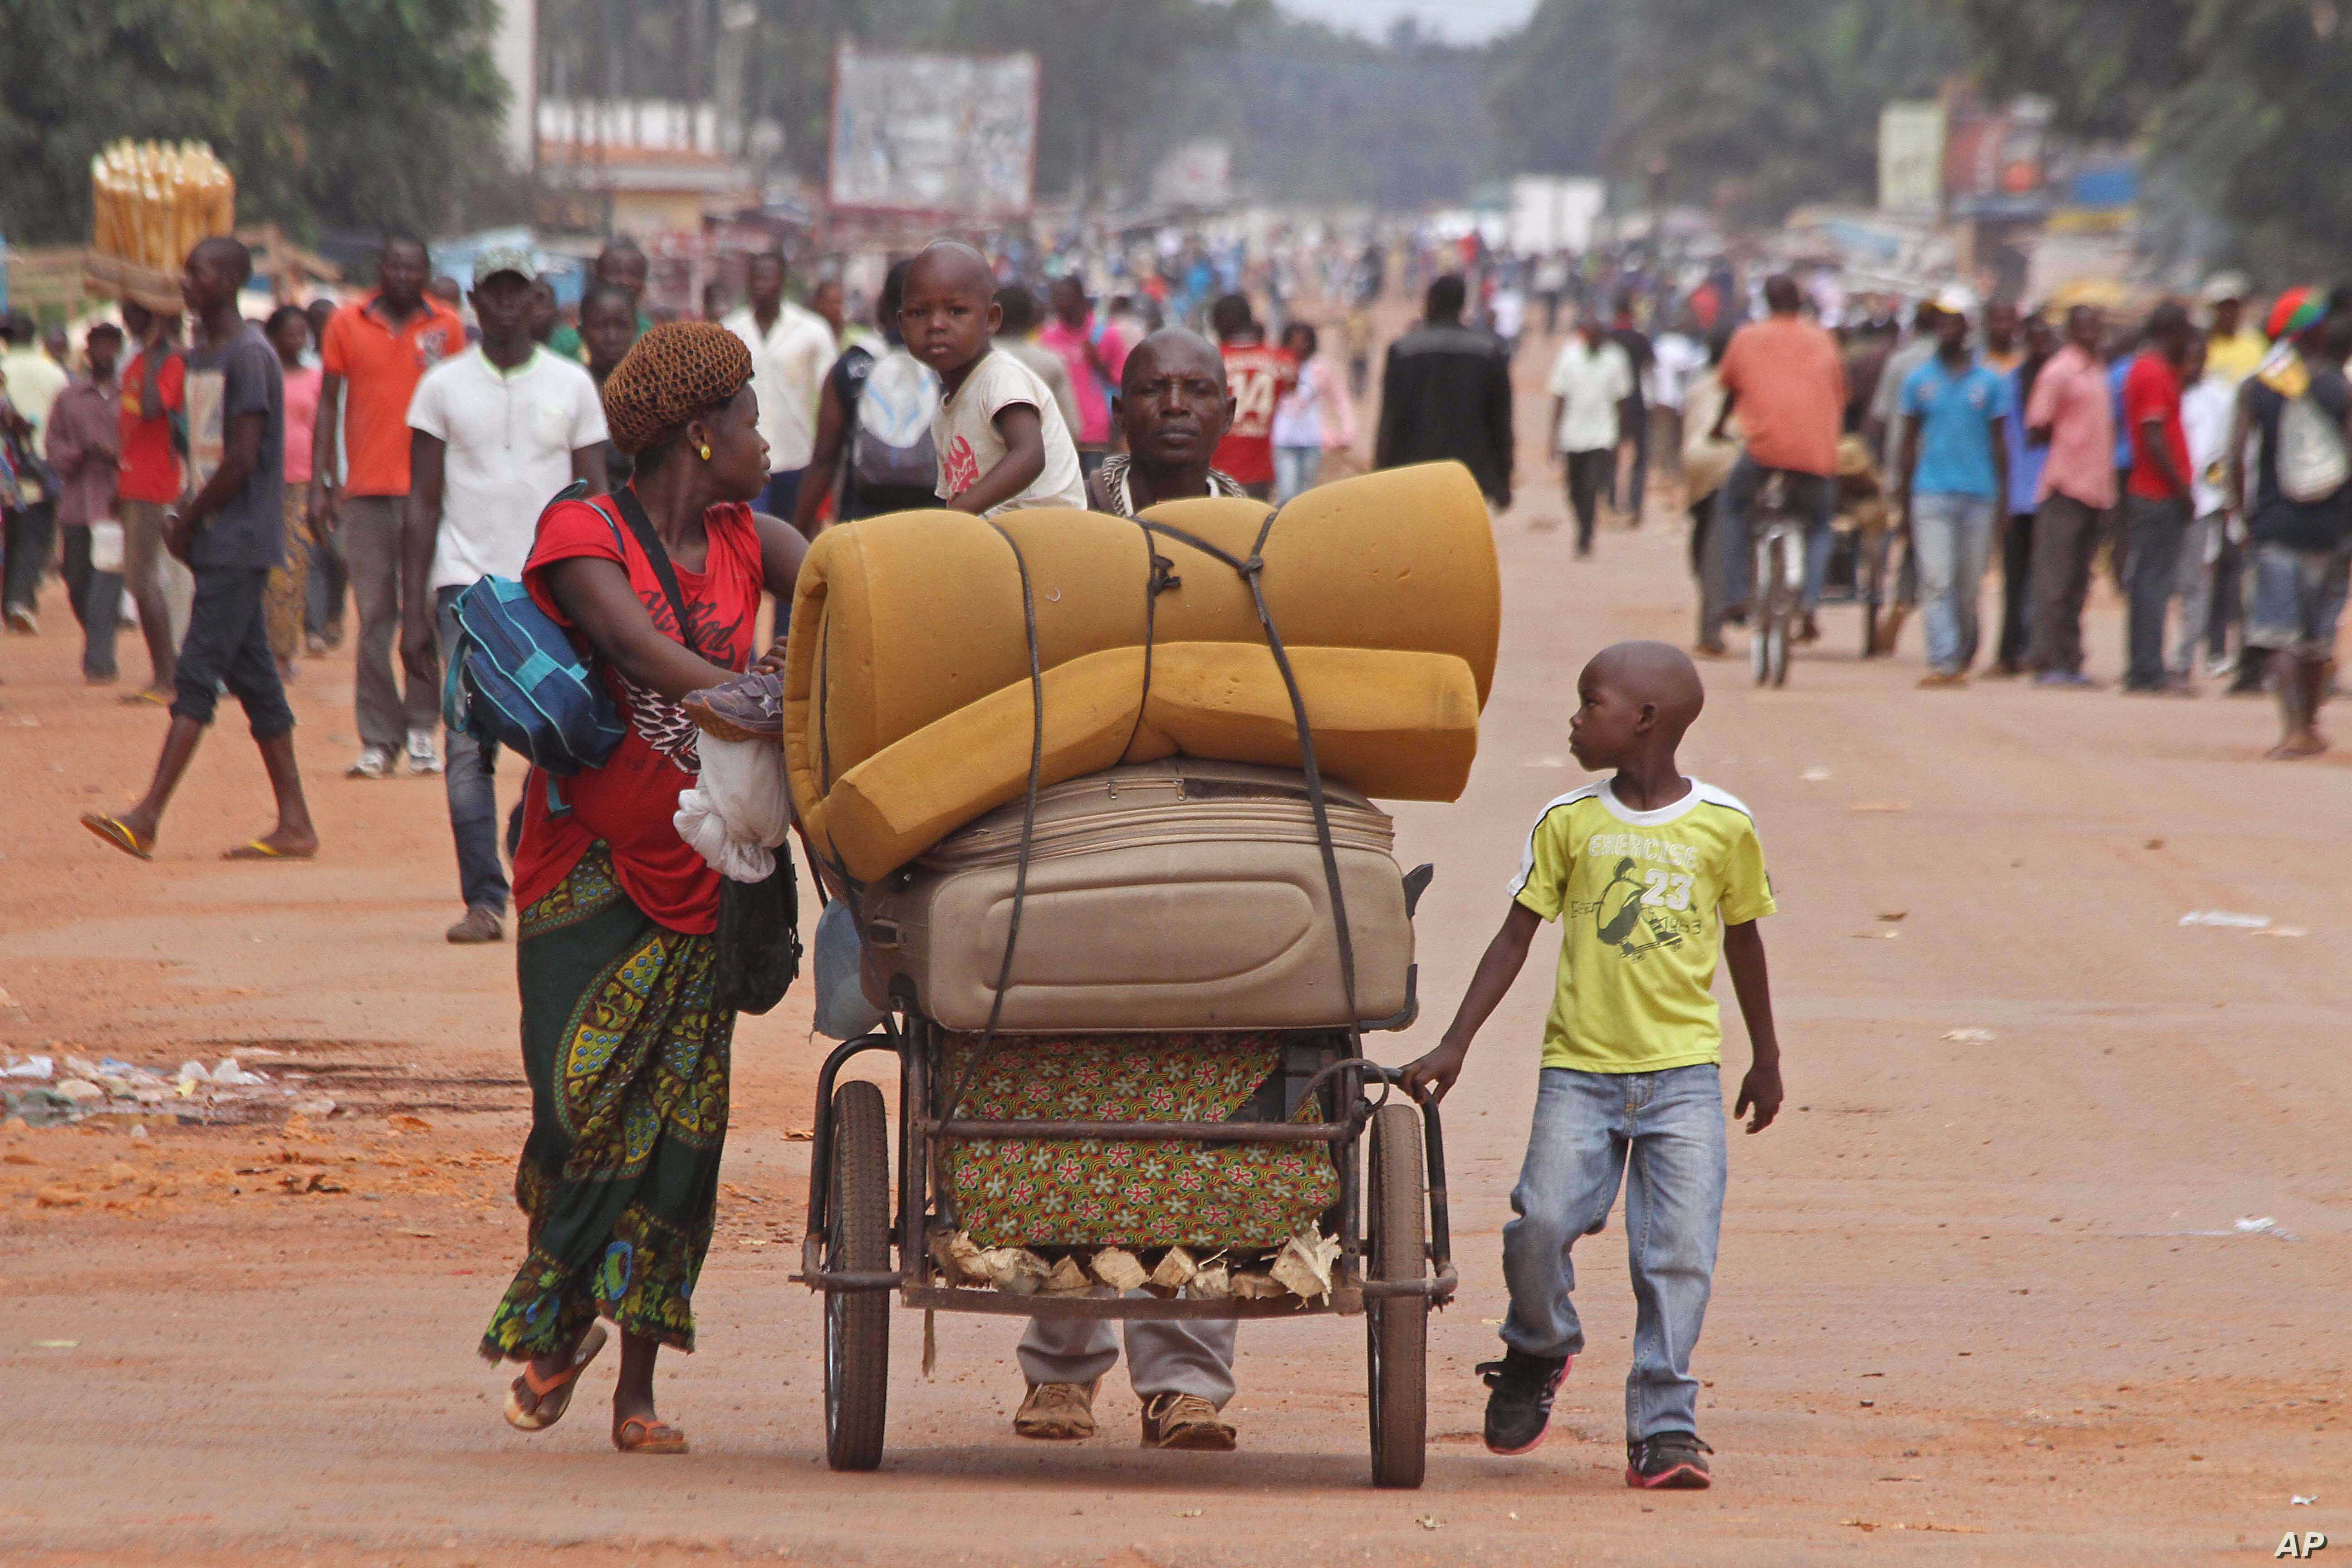 A family with there belongings on a makeshift trolley in the city of Bangui, Central African Republic, as clashes sectarian clashes erupted between rivaling Christian and Muslim militias, Sept. 30, 2015.